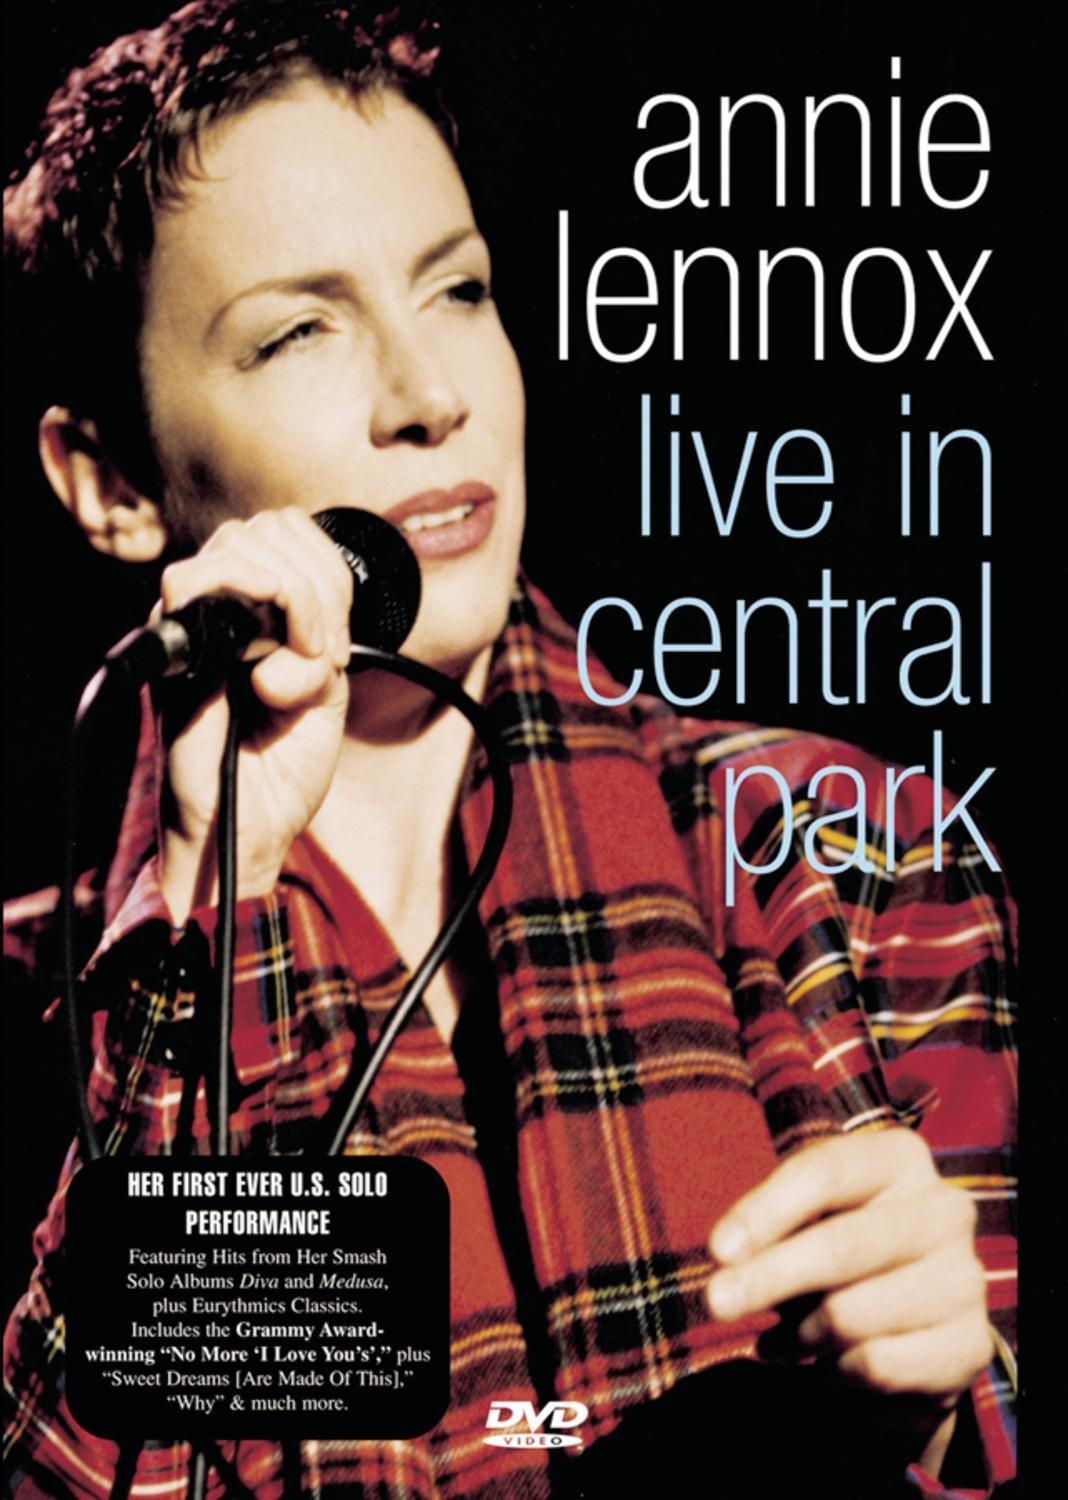 Annie Lennox - Live in Central Park by Sony Legacy